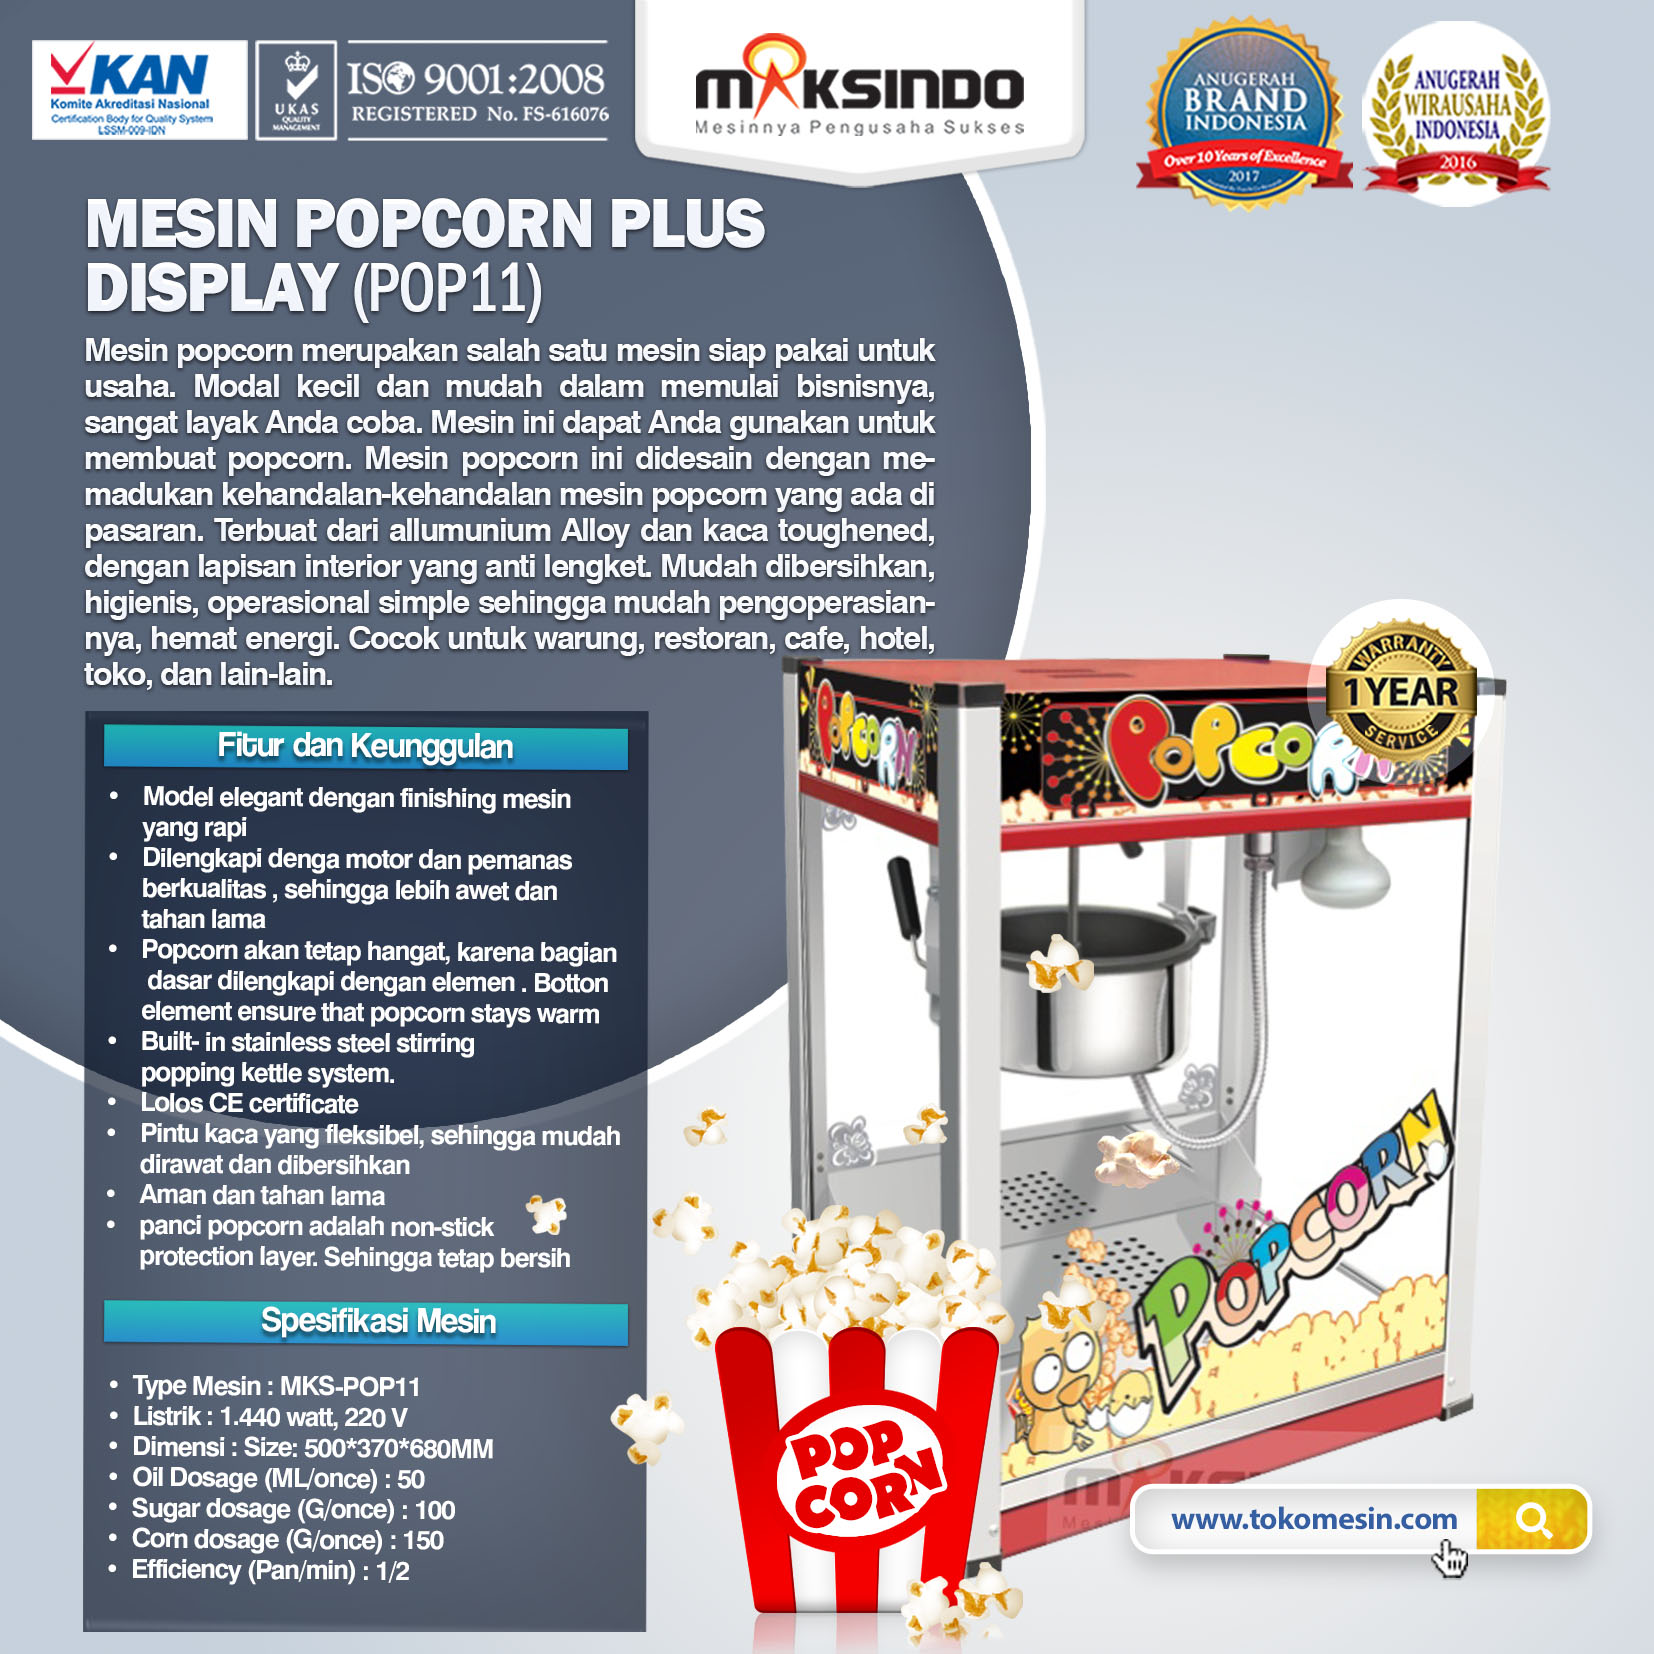 Mesin Popcorn Plus Display (POP11)